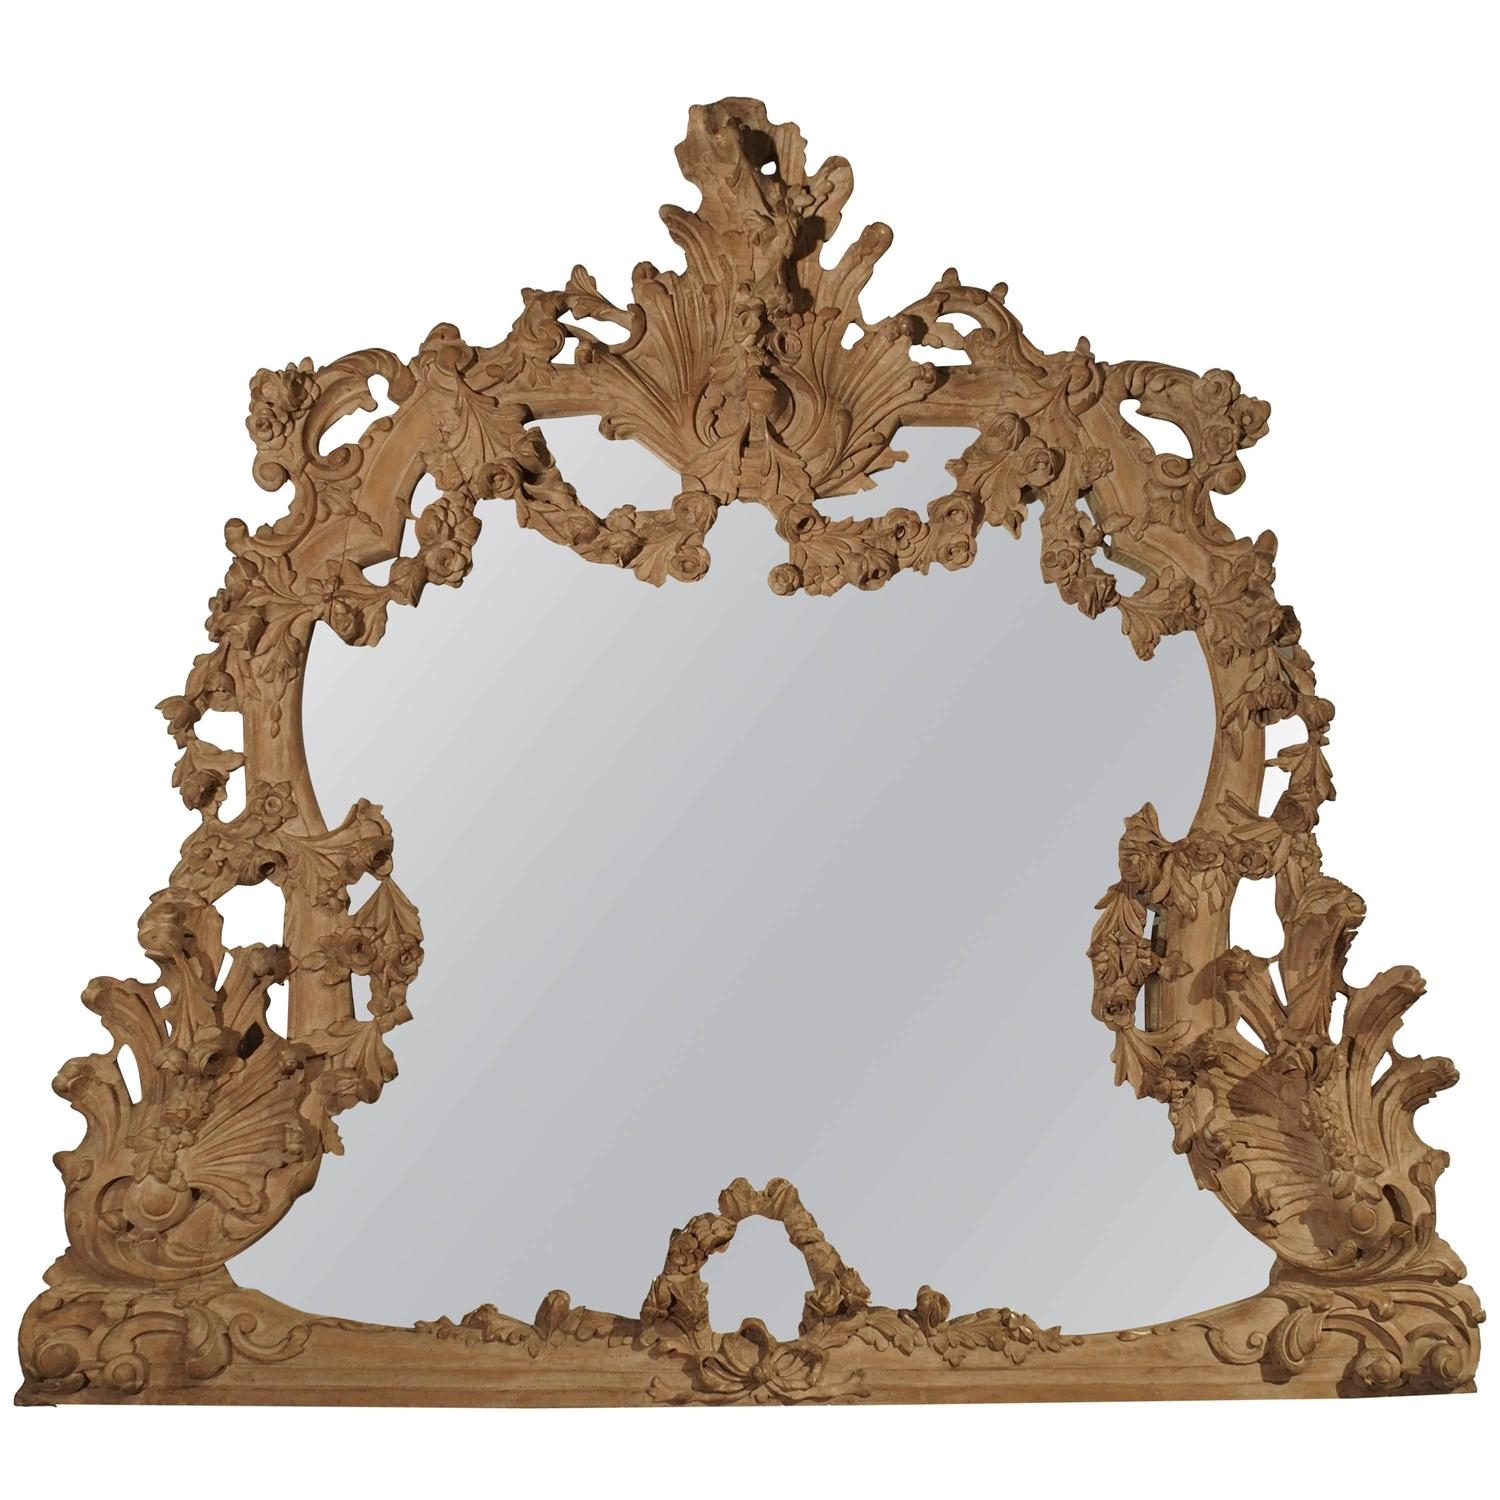 15 collection of large old mirrors for sale mirror ideas Large wooden mirrors for sale